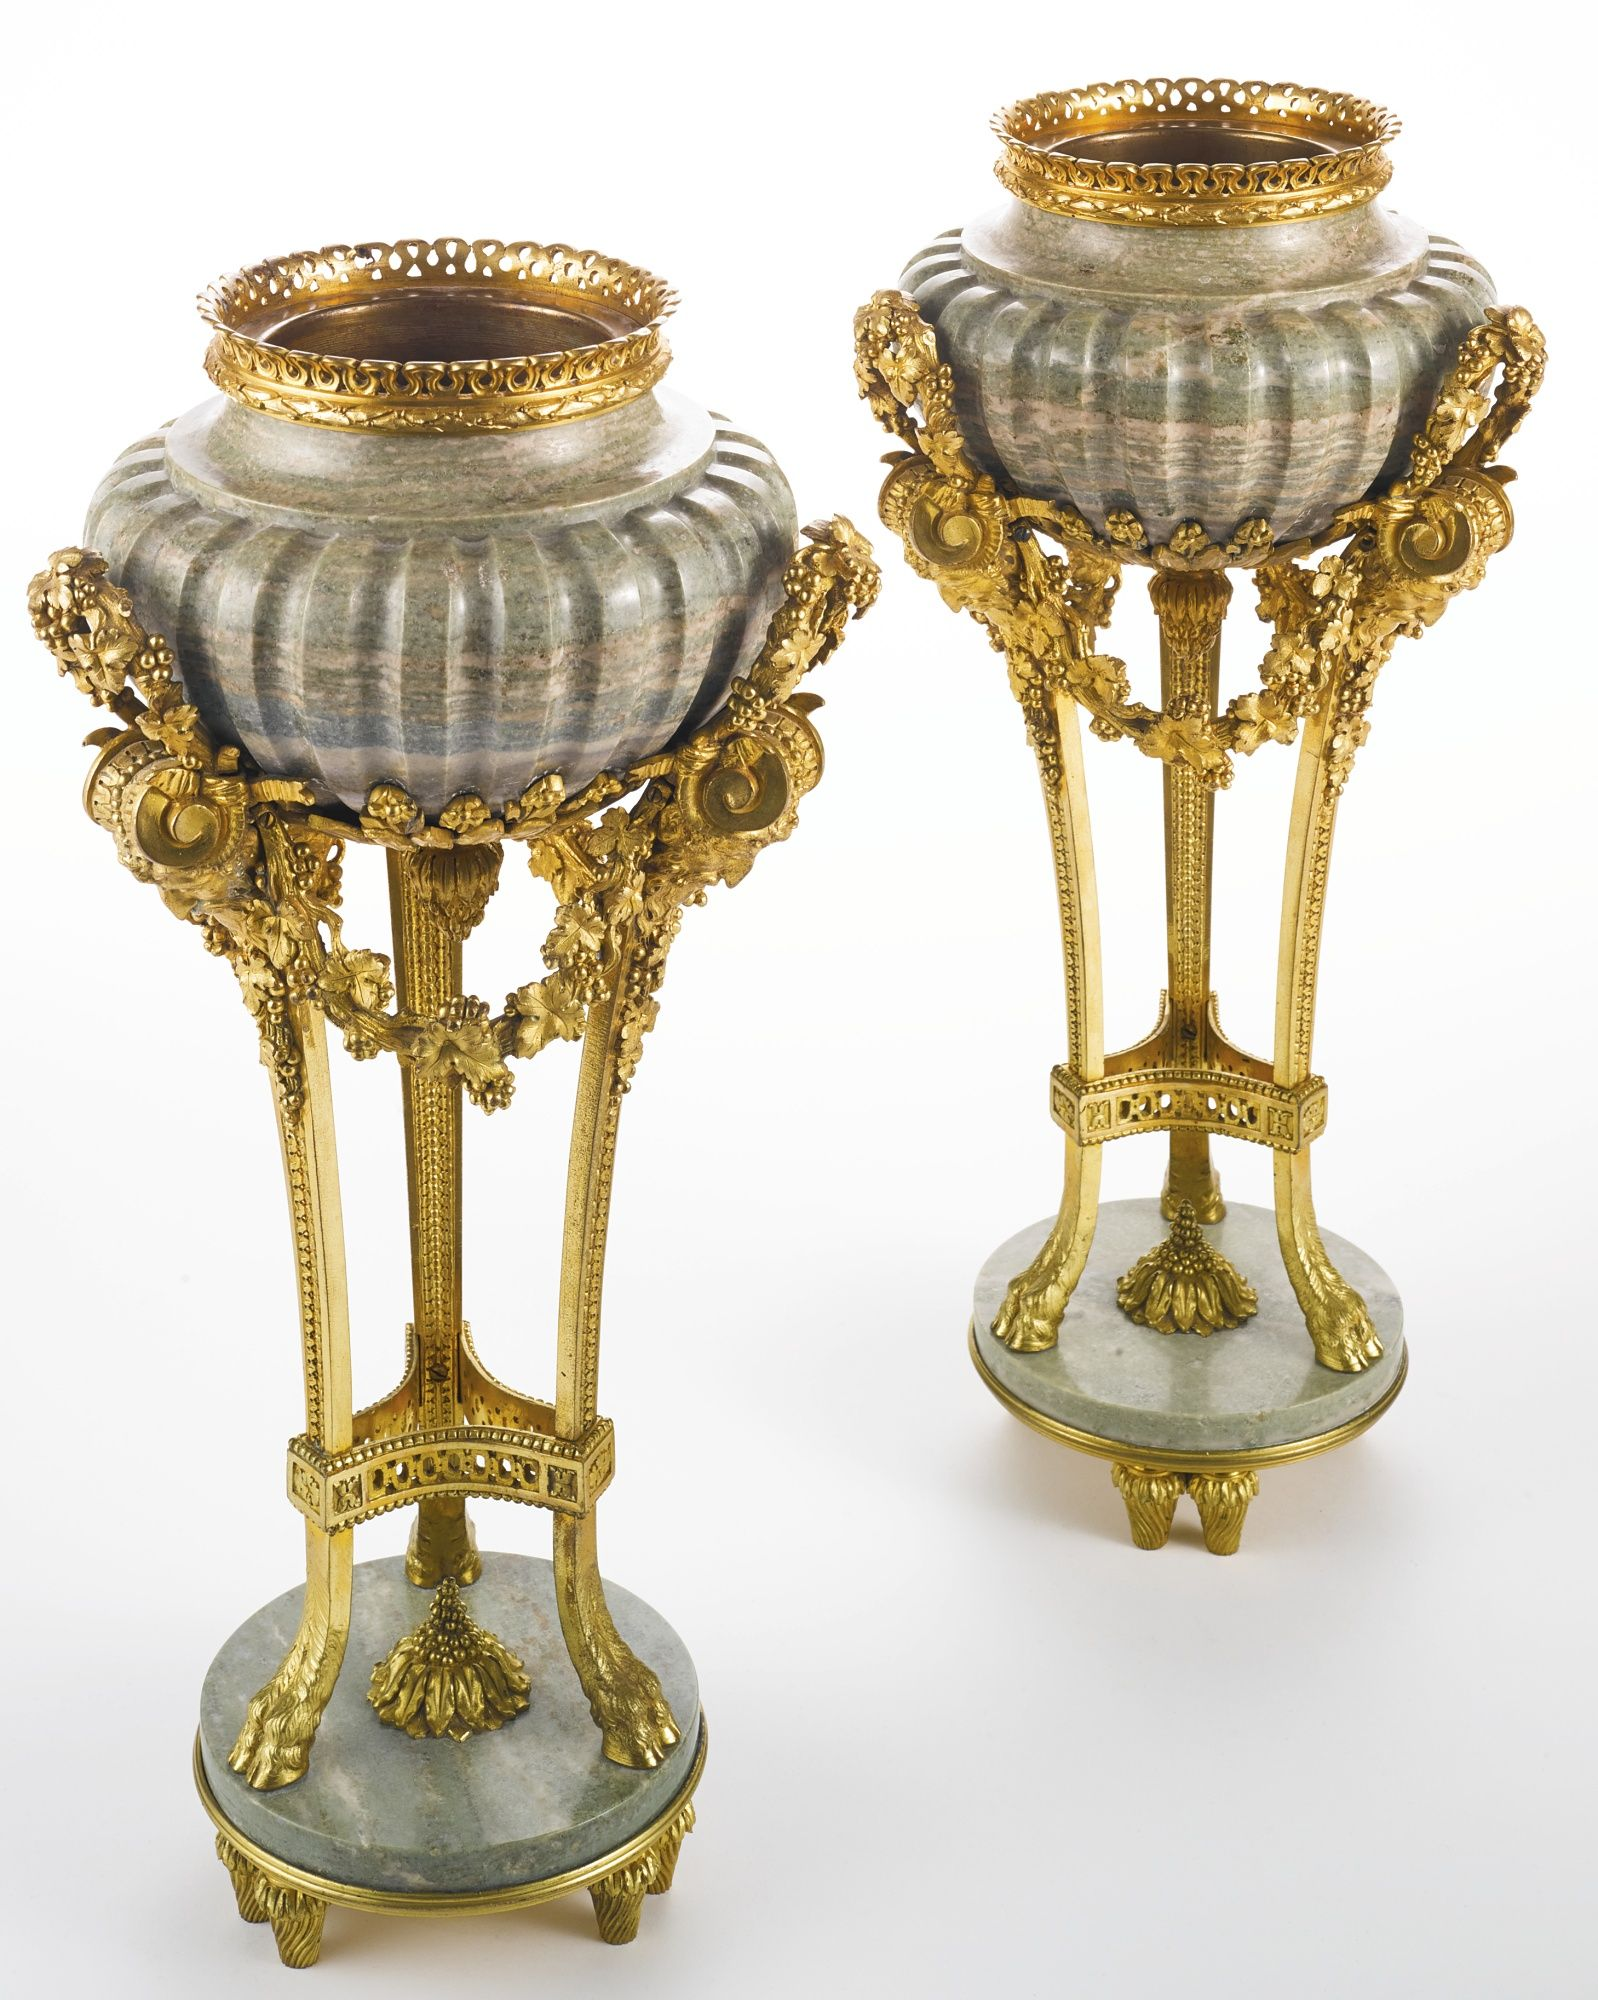 A PAIR OF LOUIS XVI STYLE GILT BRONZE-MOUNTED IRISH CONNEMARA MARBLE URNS PARIS, LATE 19TH CENTURY, AFTER THE CELEBRATED MODEL BY PIERRE GOUTHIÈRE